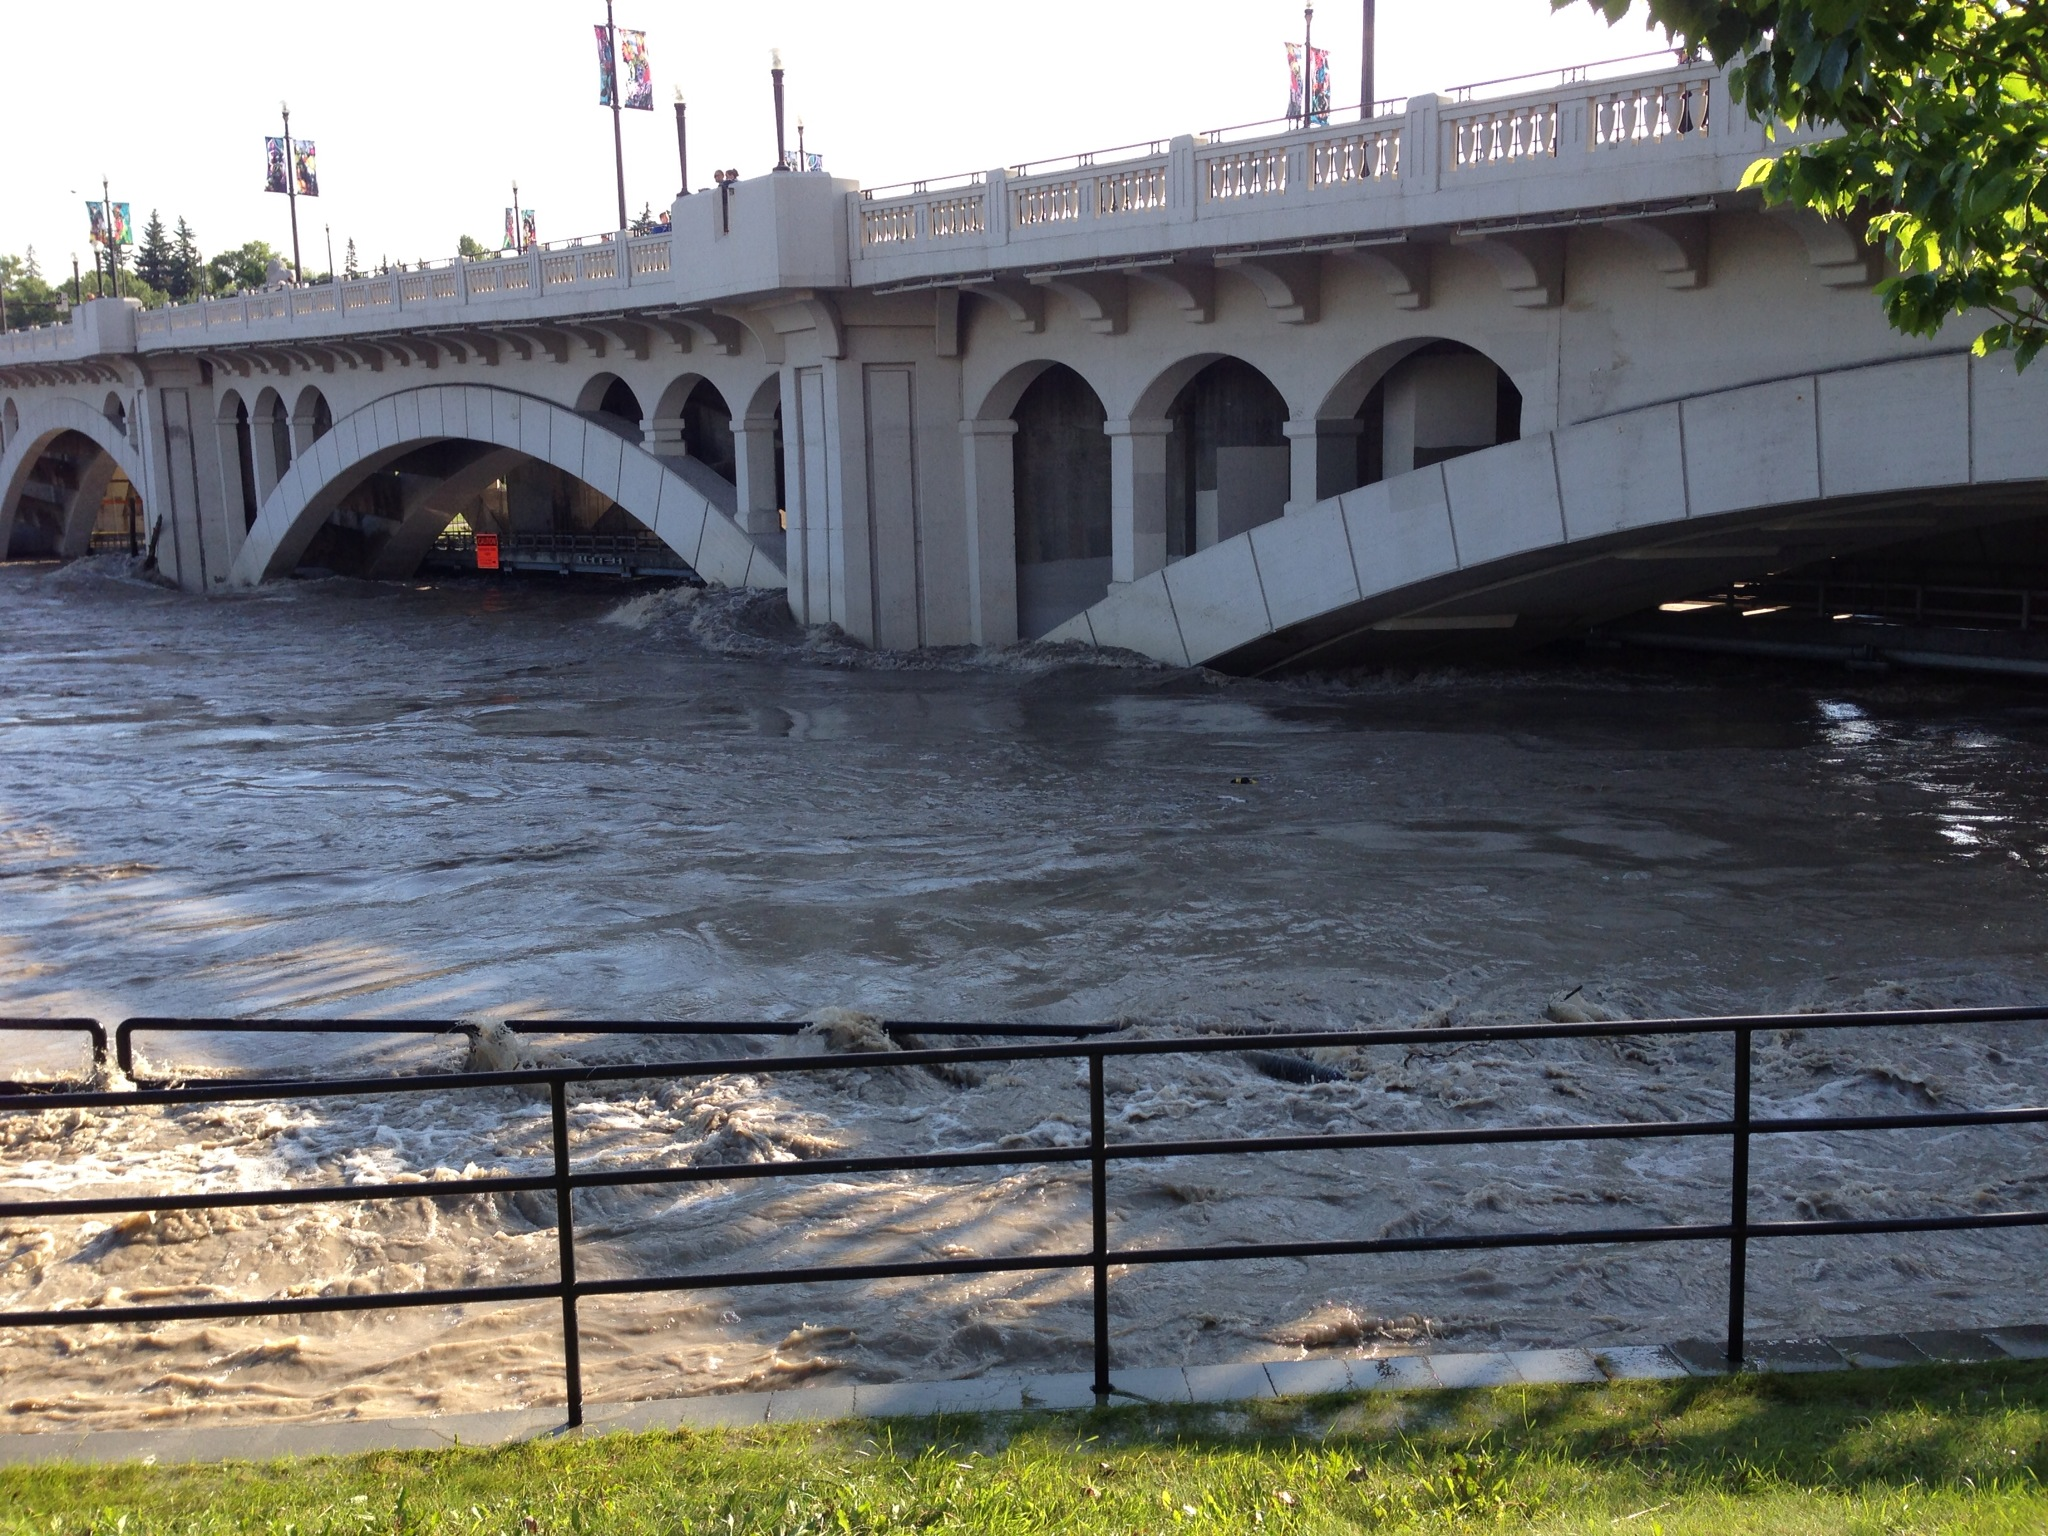 calgary-flood-2013-bridge-lwwa